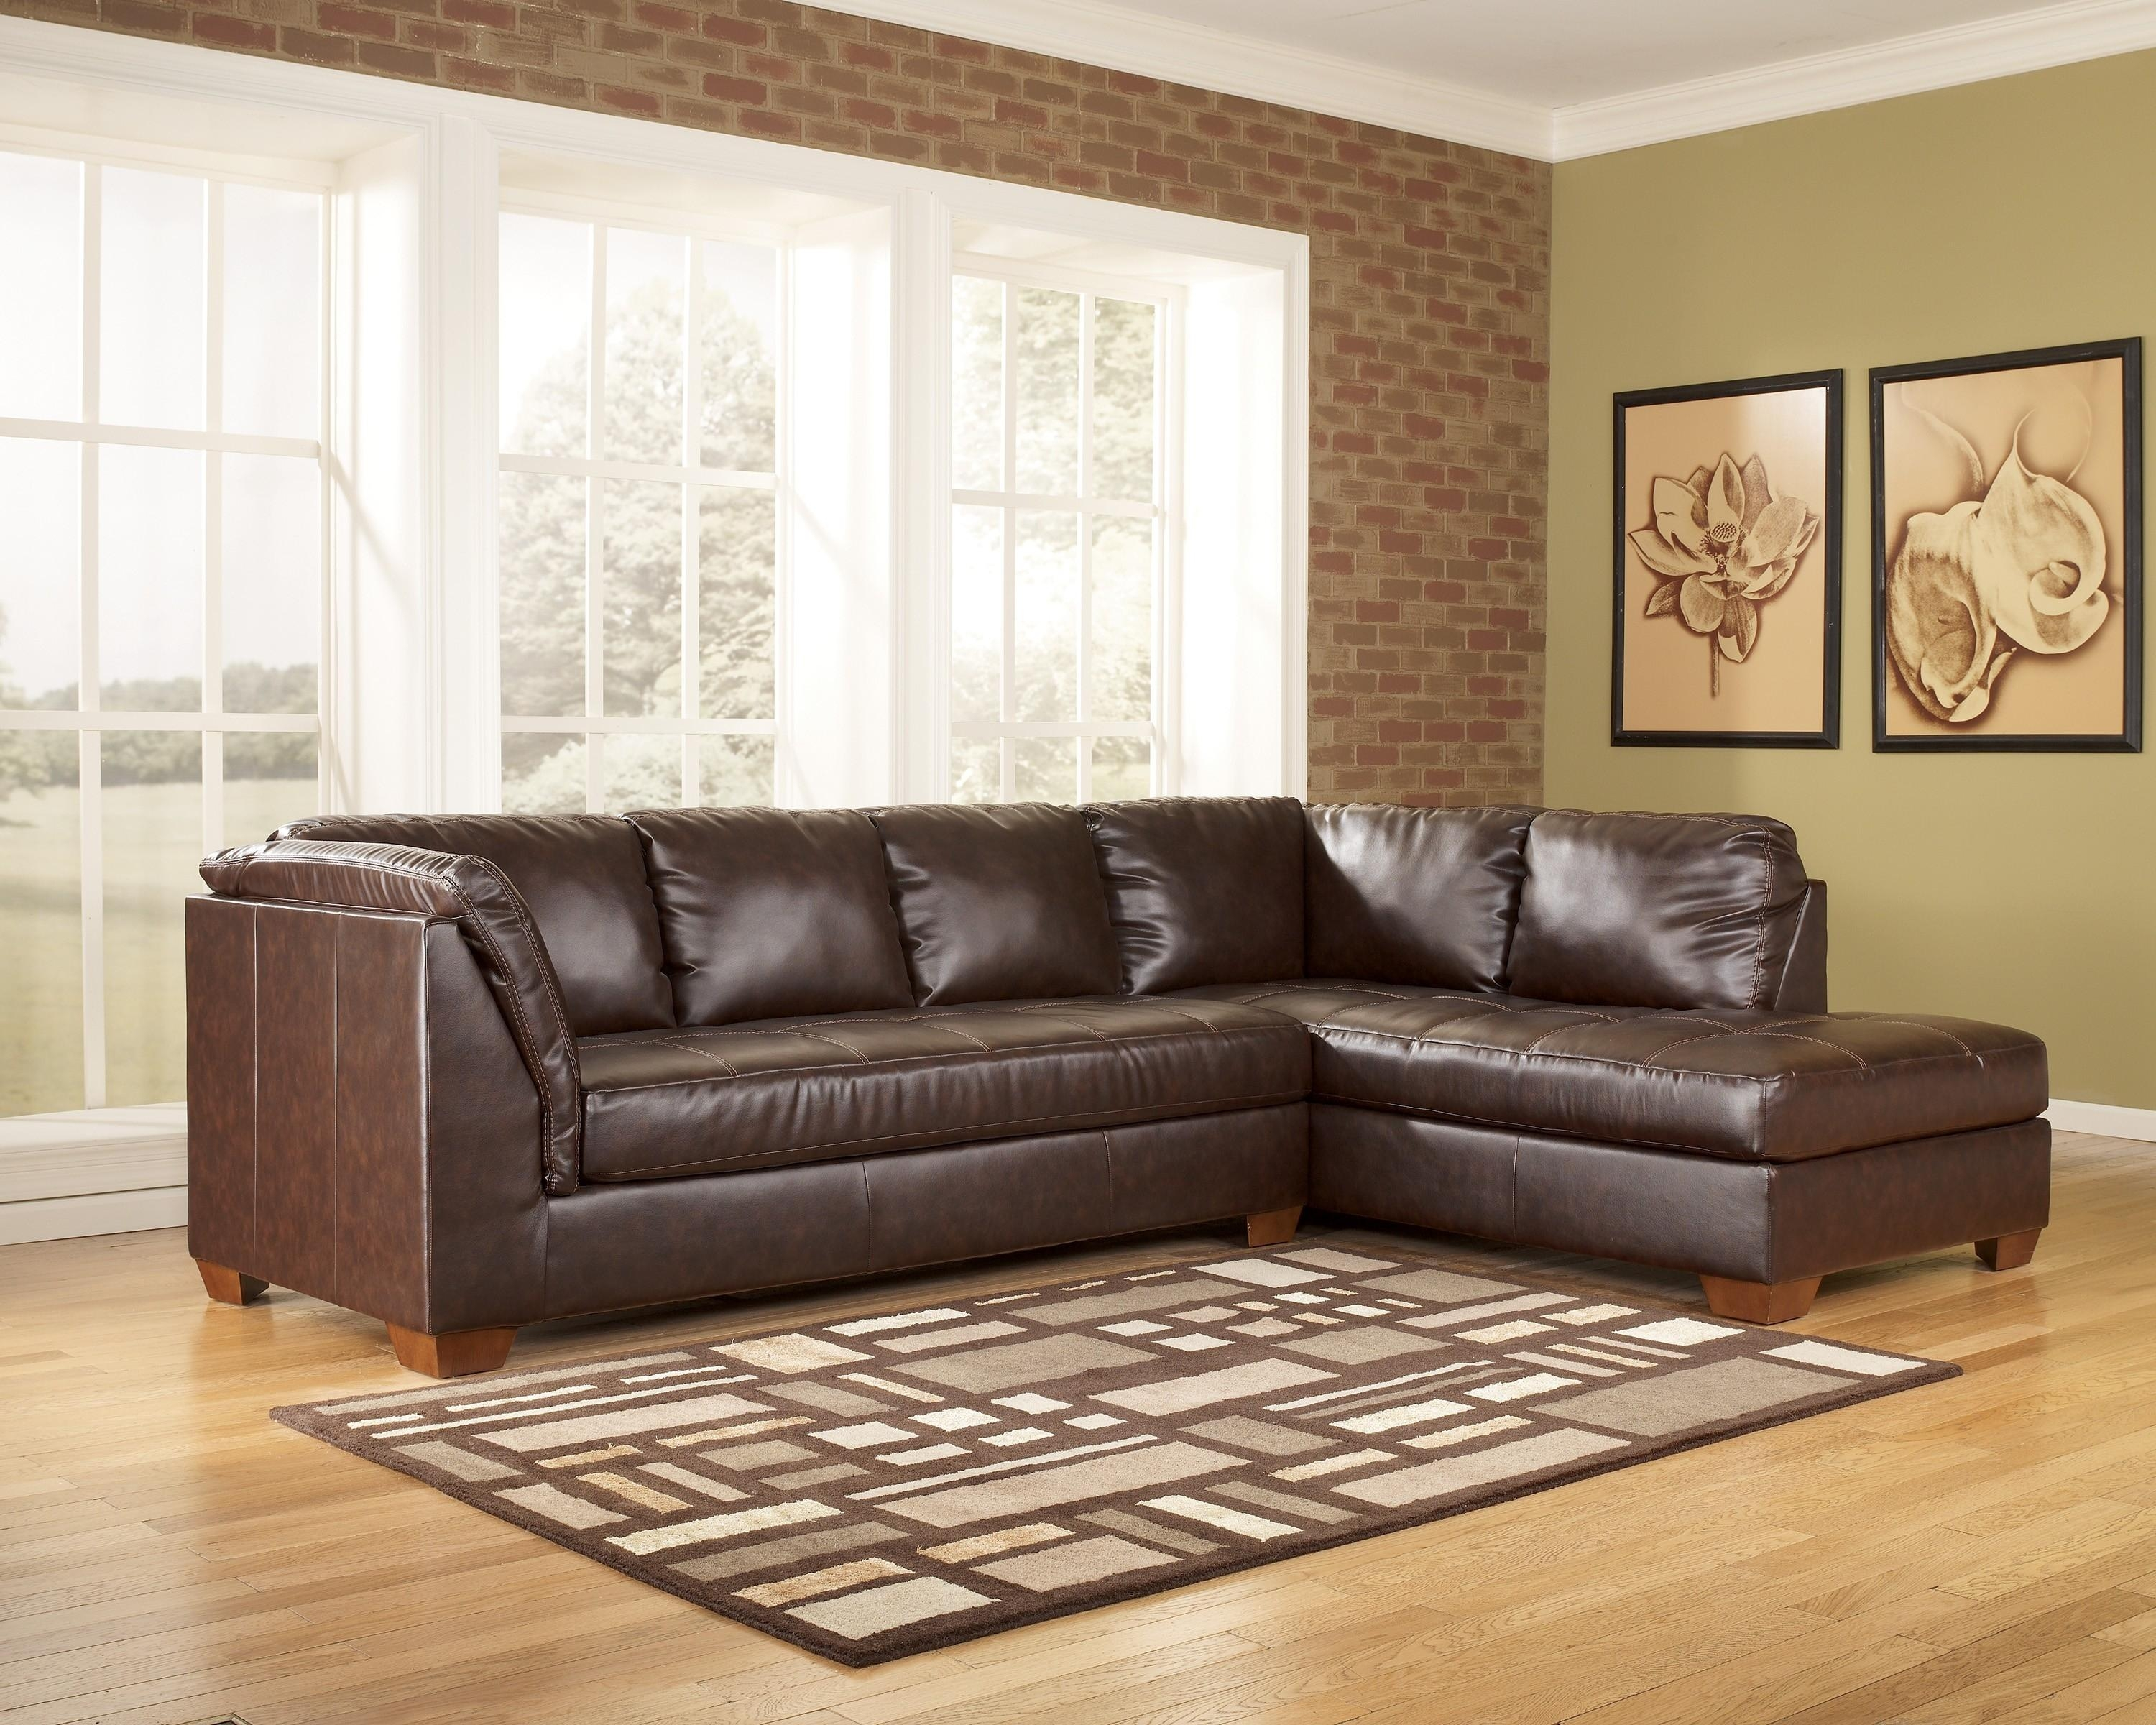 Sofas Center : Contemporary Sectional Sofas On Clearance Within Houston Sectional Sofa (View 17 of 20)